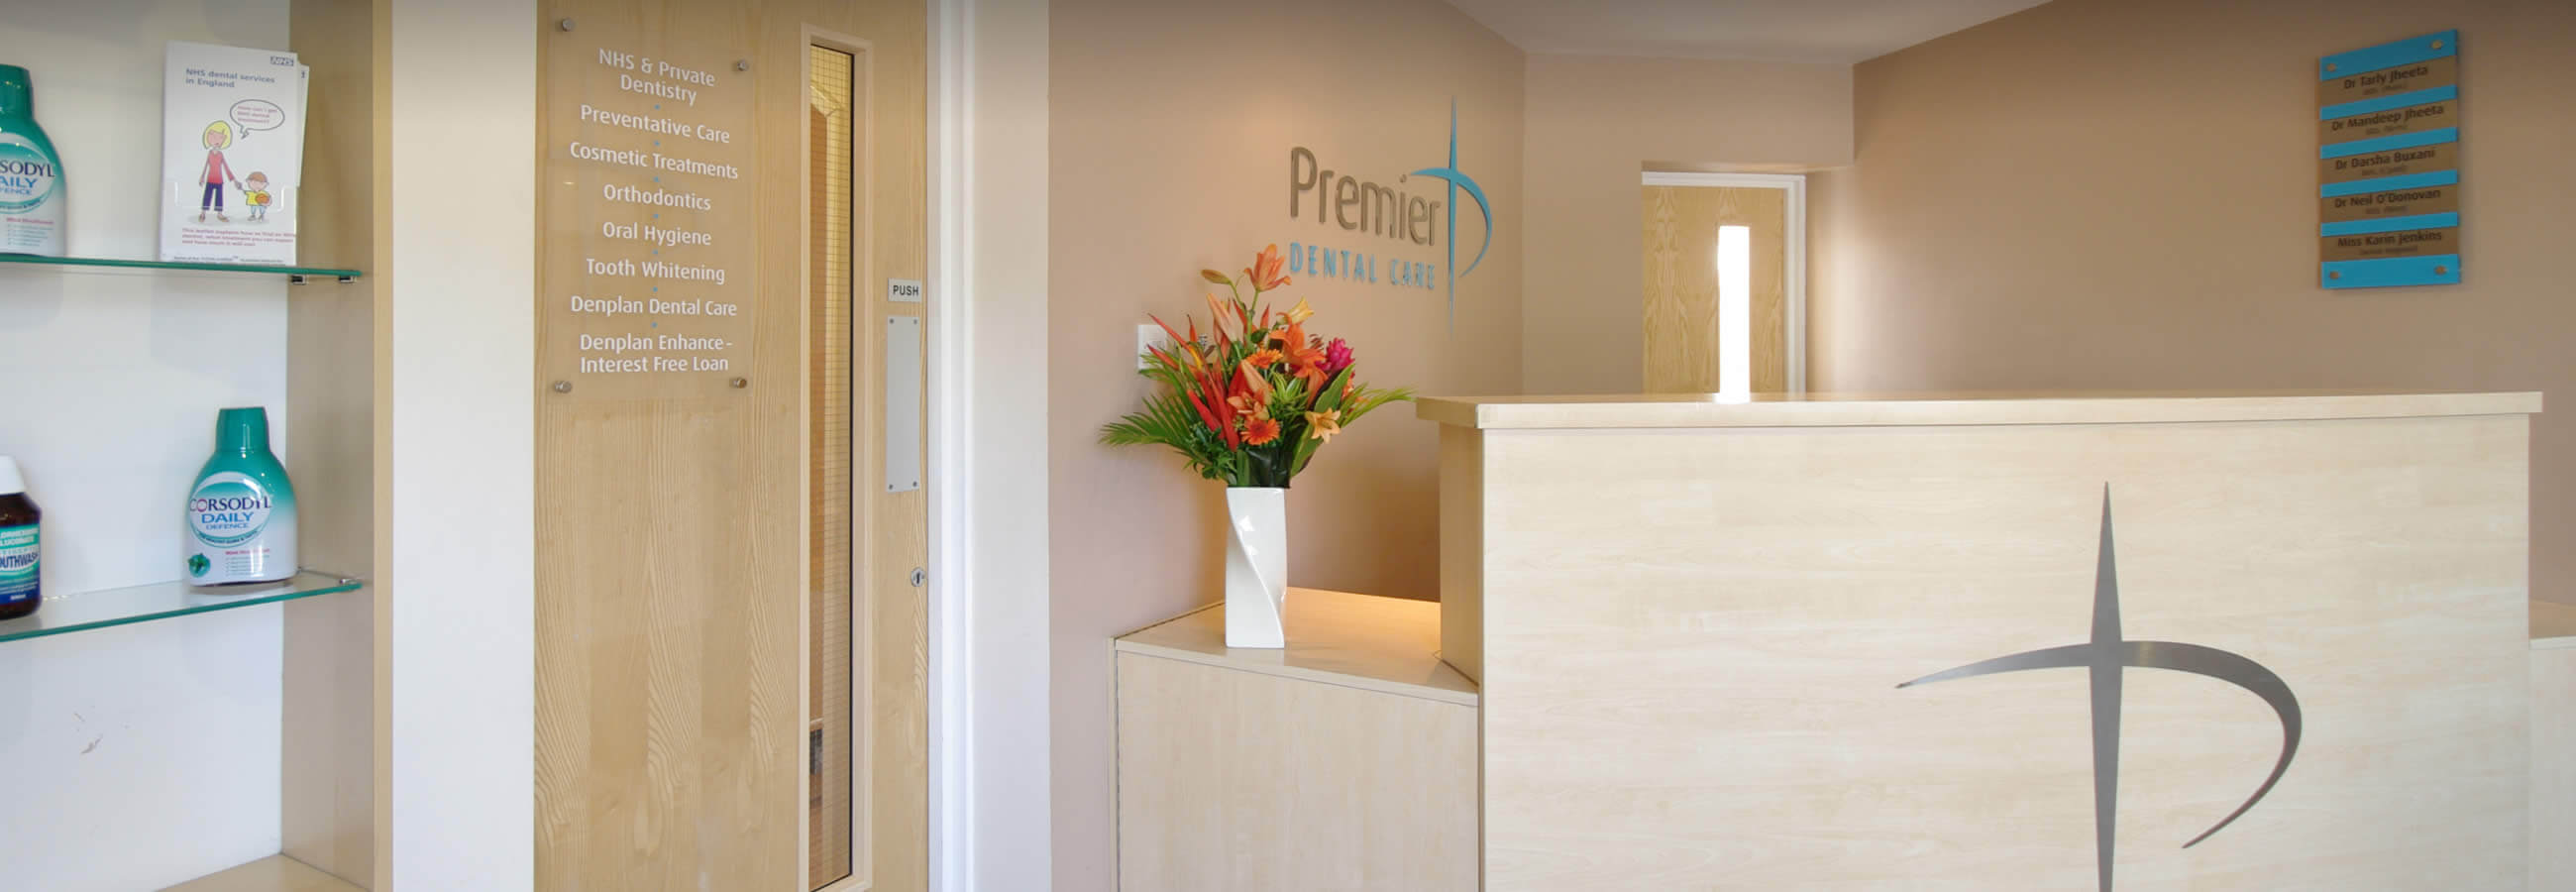 Meet the Premier Dental Care team